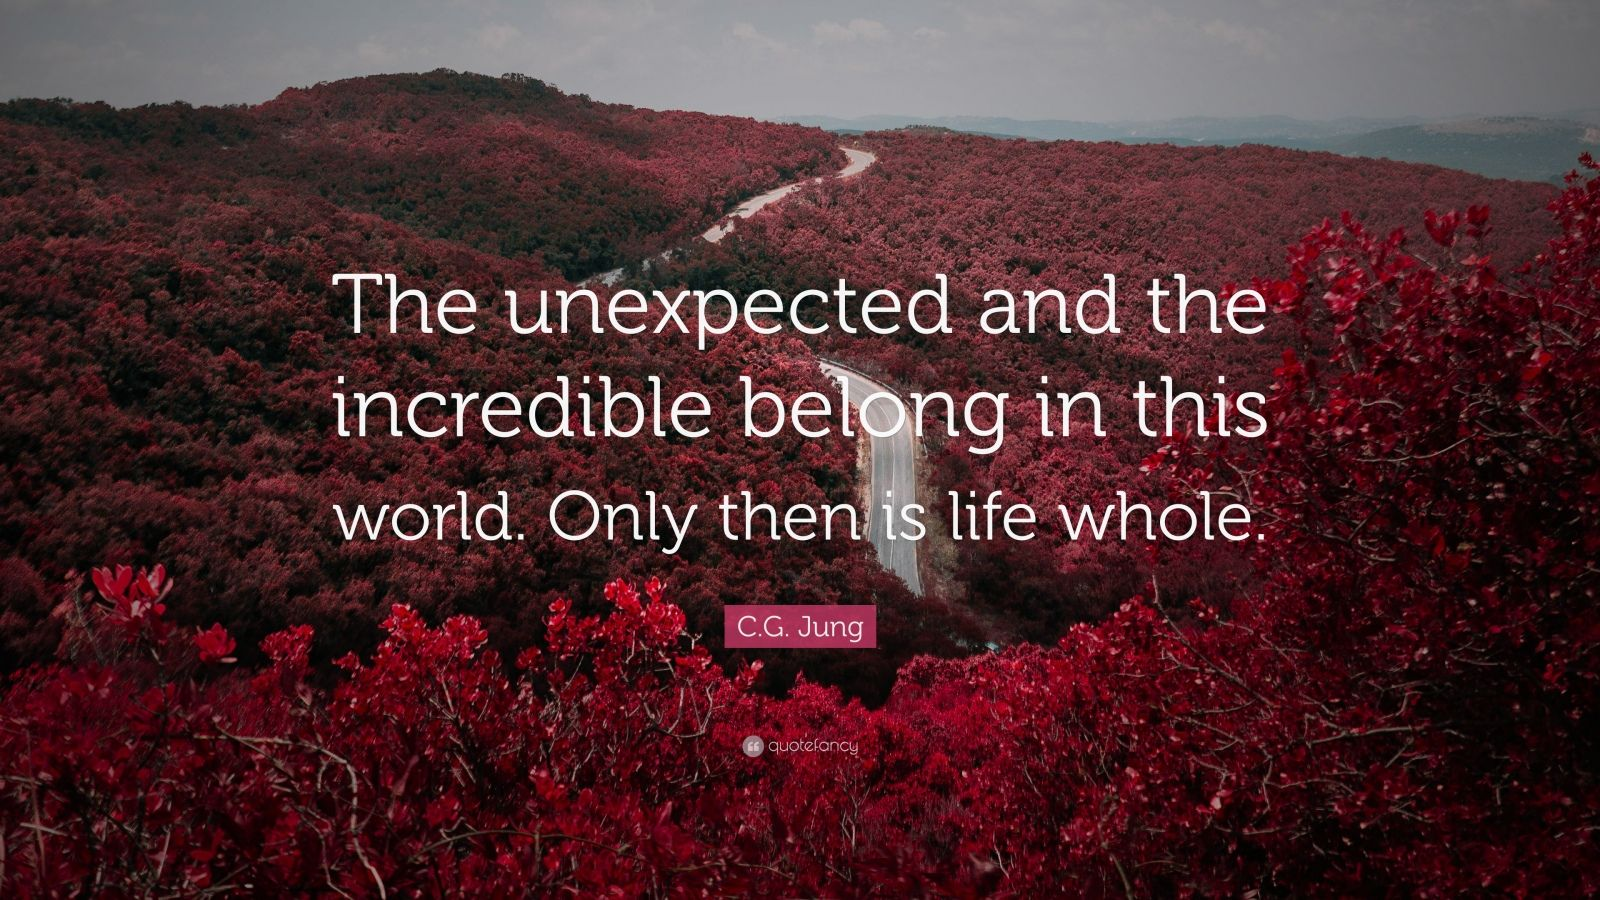 """C.G. Jung Quote: """"The unexpected and the incredible belong in this world. Only then is life whole."""""""